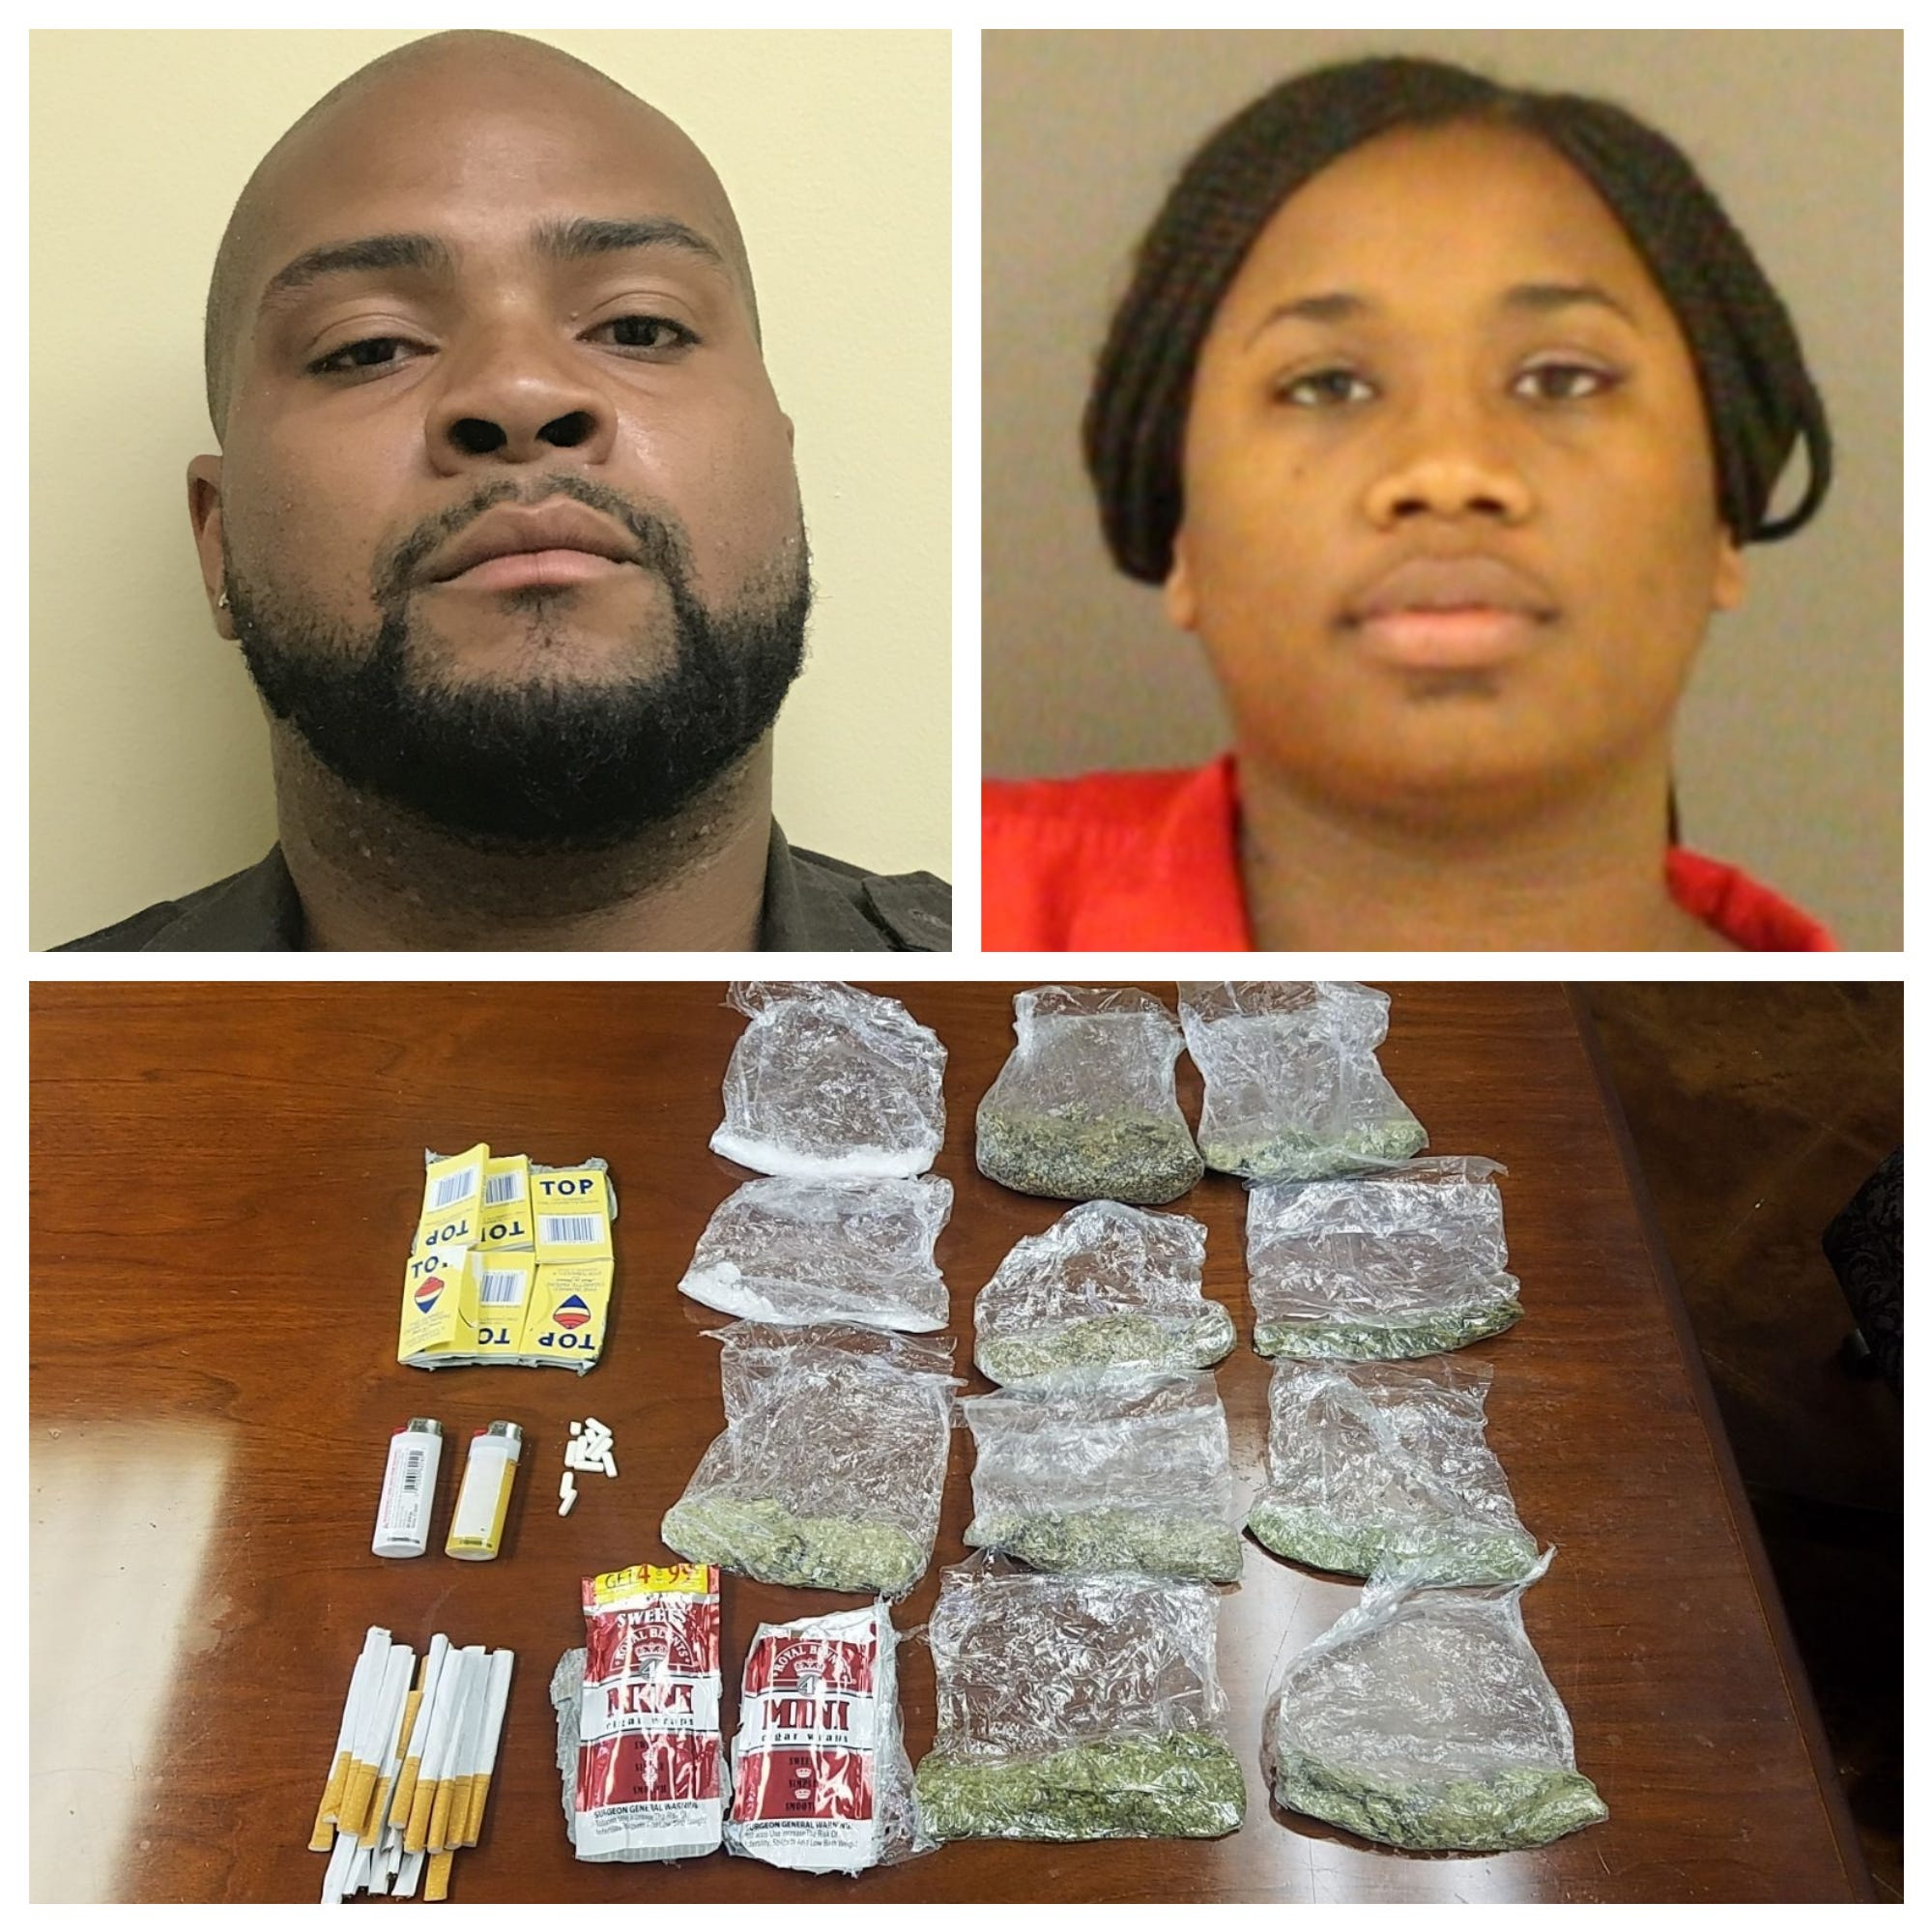 Marcell Anderson and Shauntavia Lee with contraband they are alleged to have brought into the Raymond detention center.